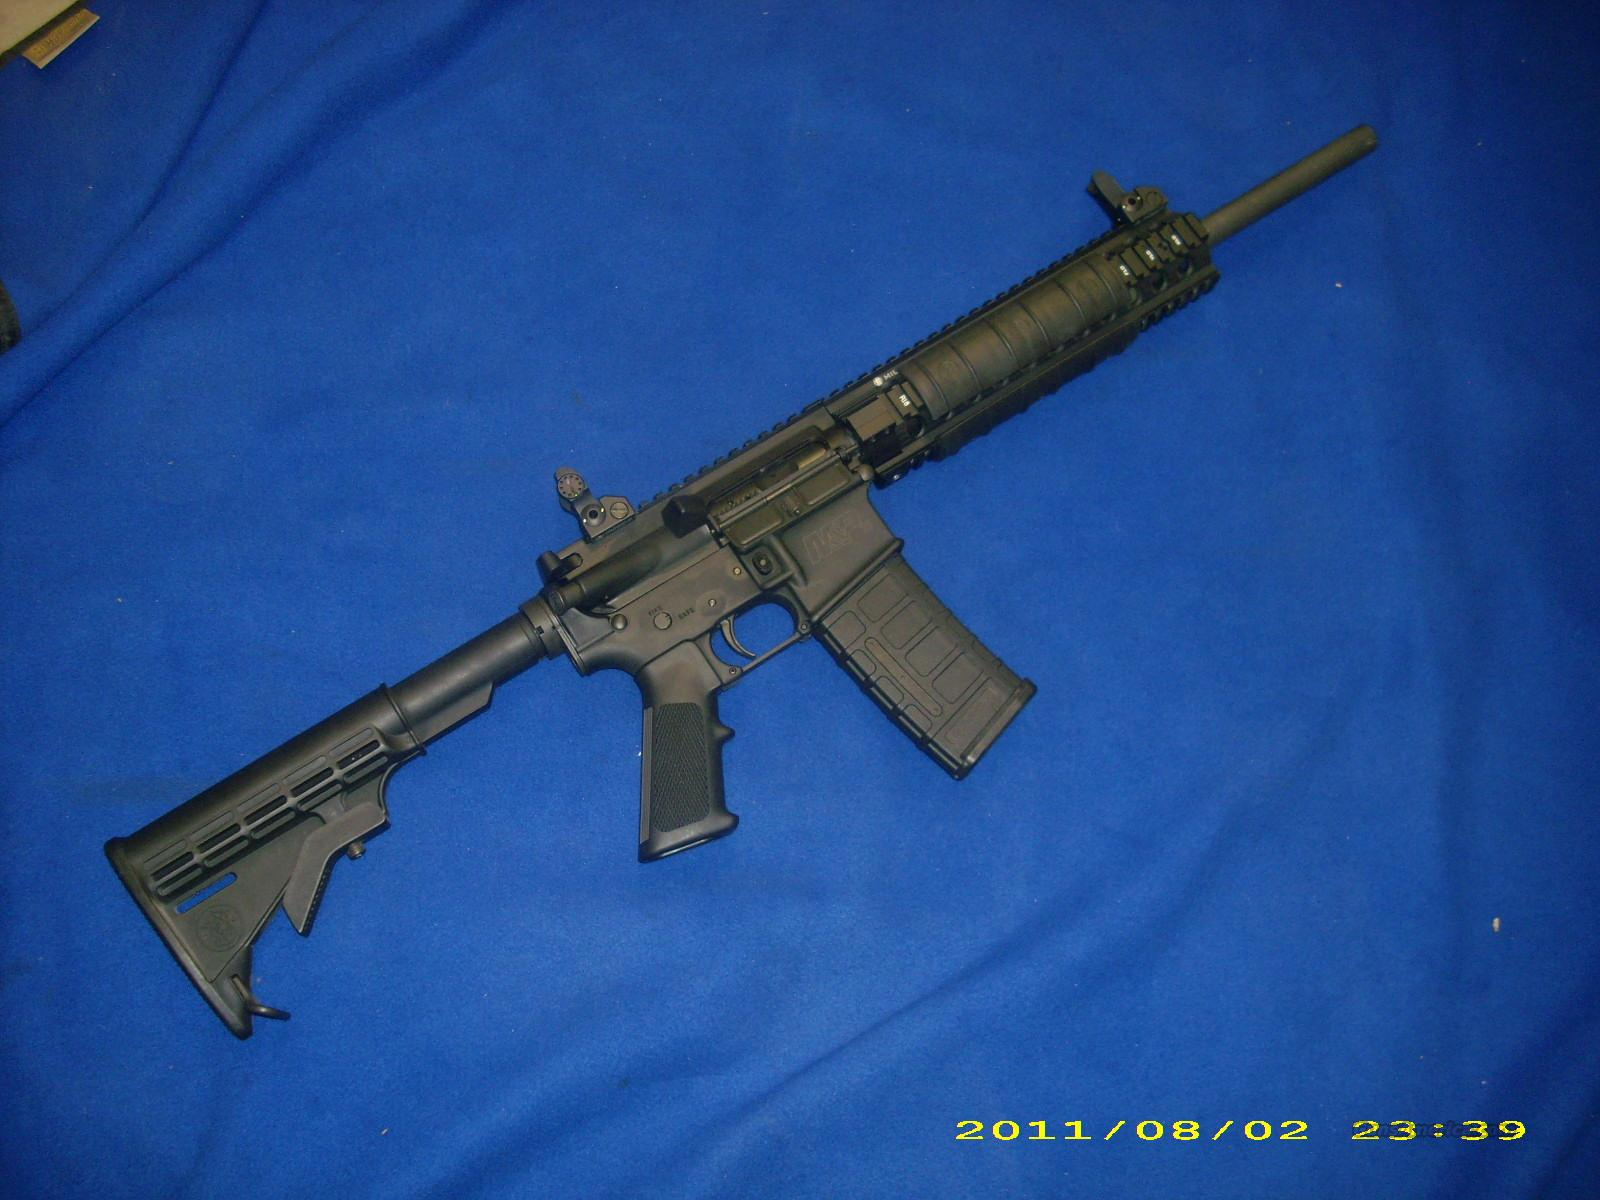 Smith and Wesson M&P 15 5.56   Guns > Rifles > Smith & Wesson Rifles > M&P